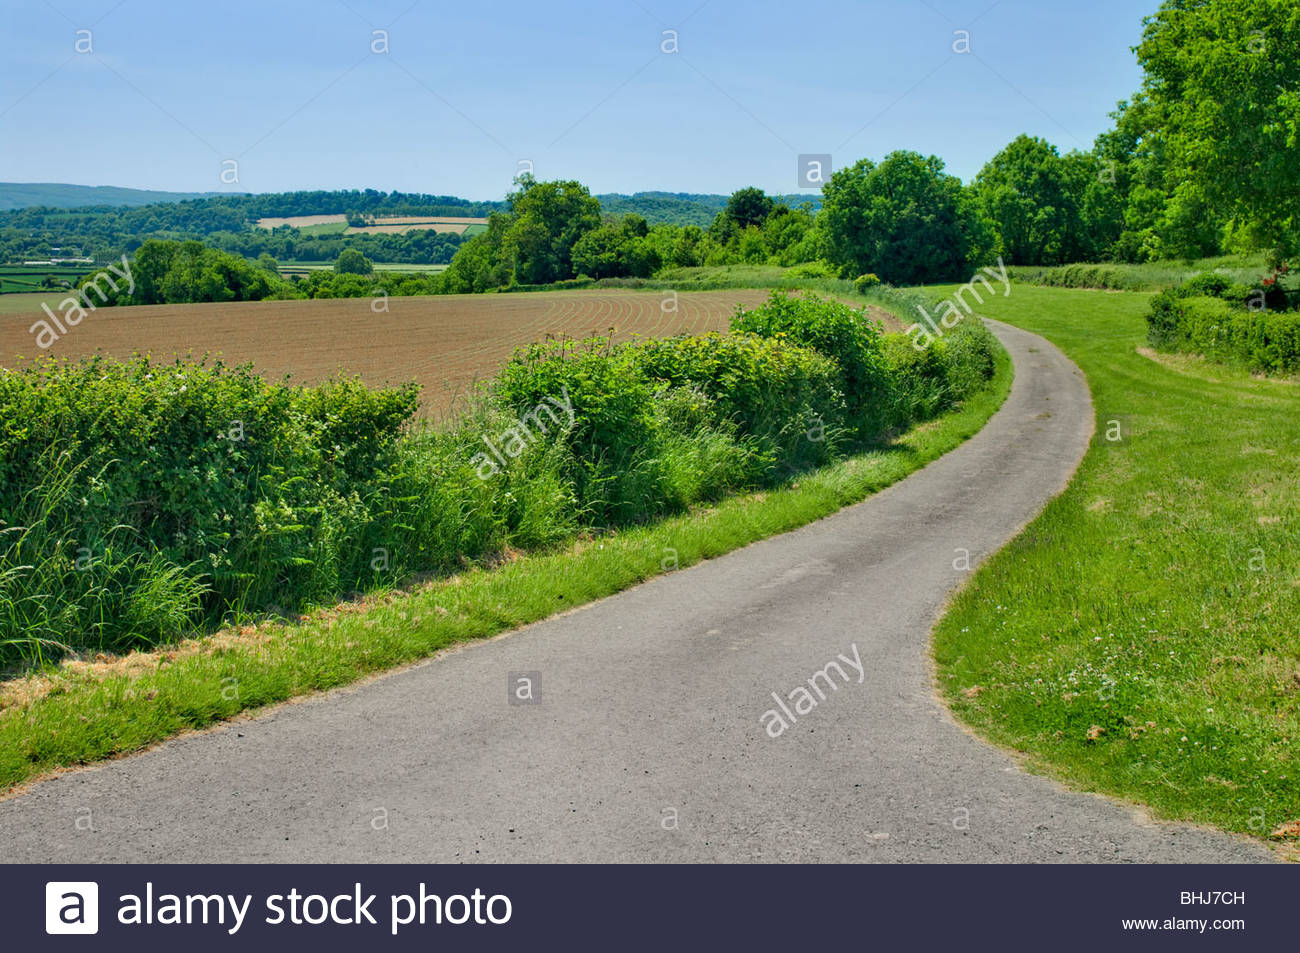 Country lane and hedgerows in summer countryside; Gwent Wales UK - Stock Image